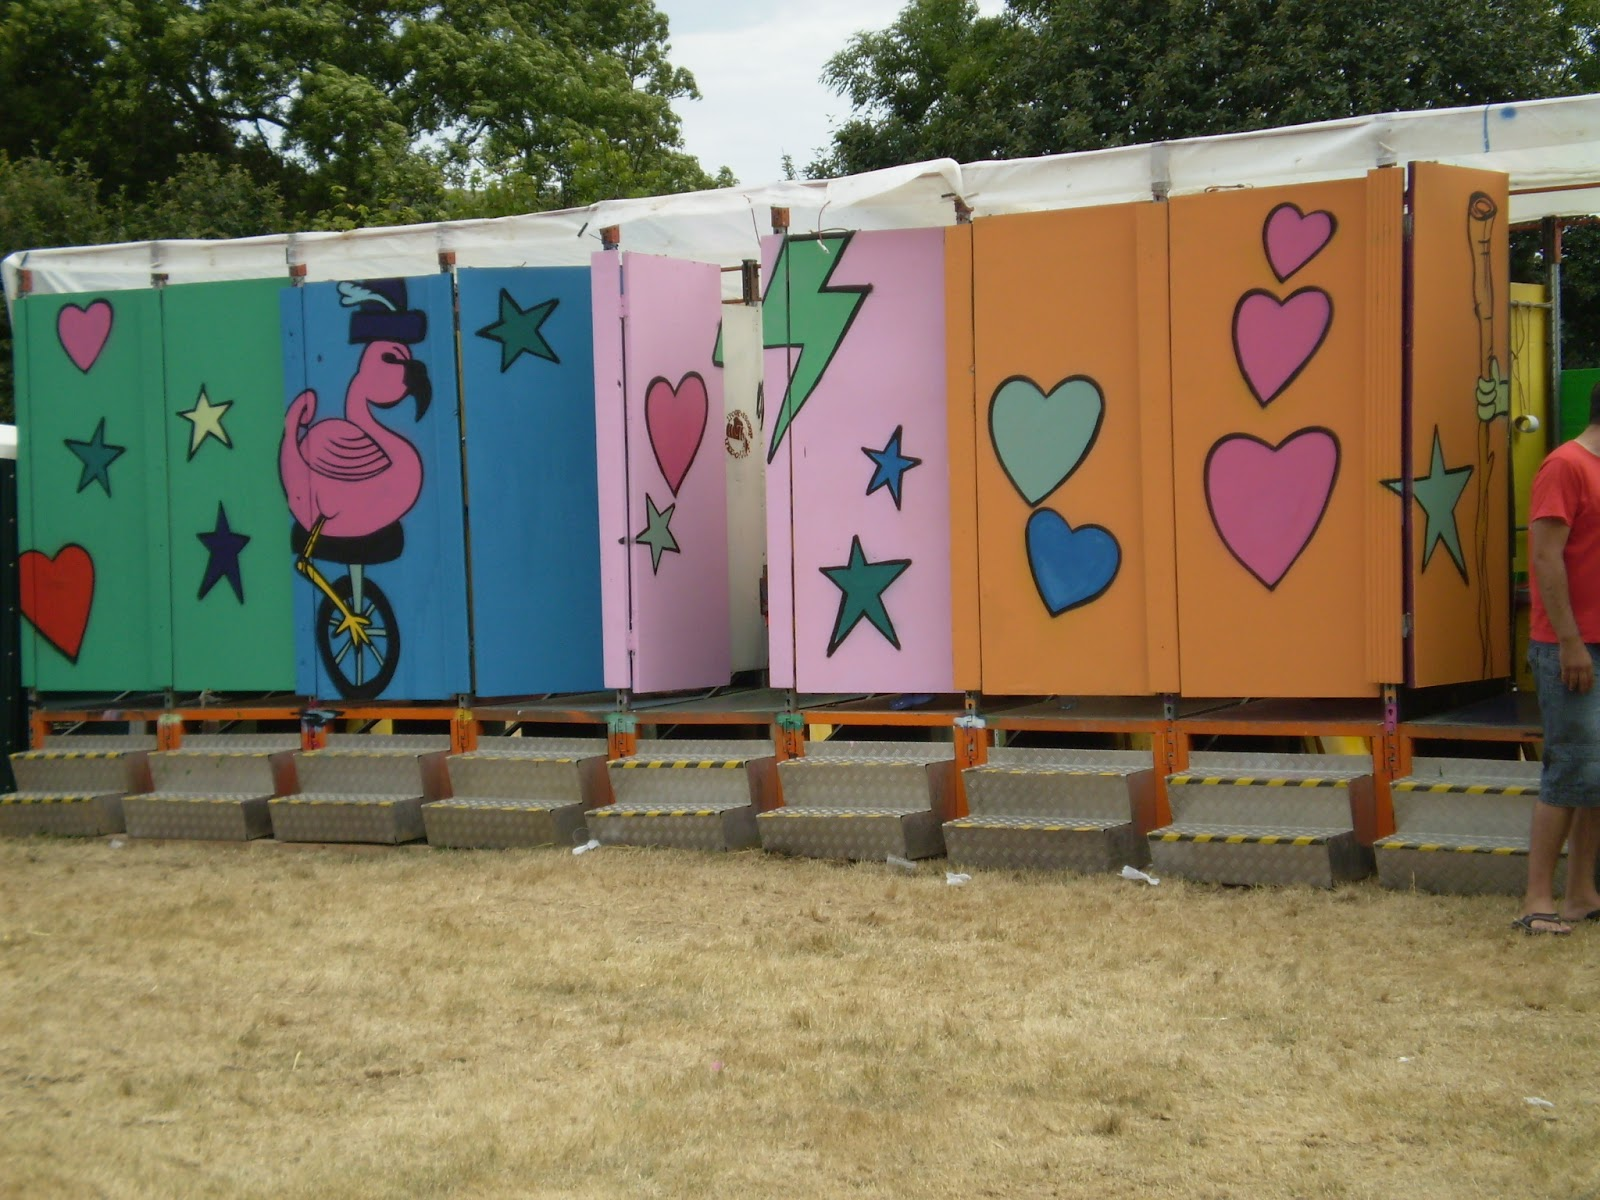 row of brightly painted compost toilets at a festival